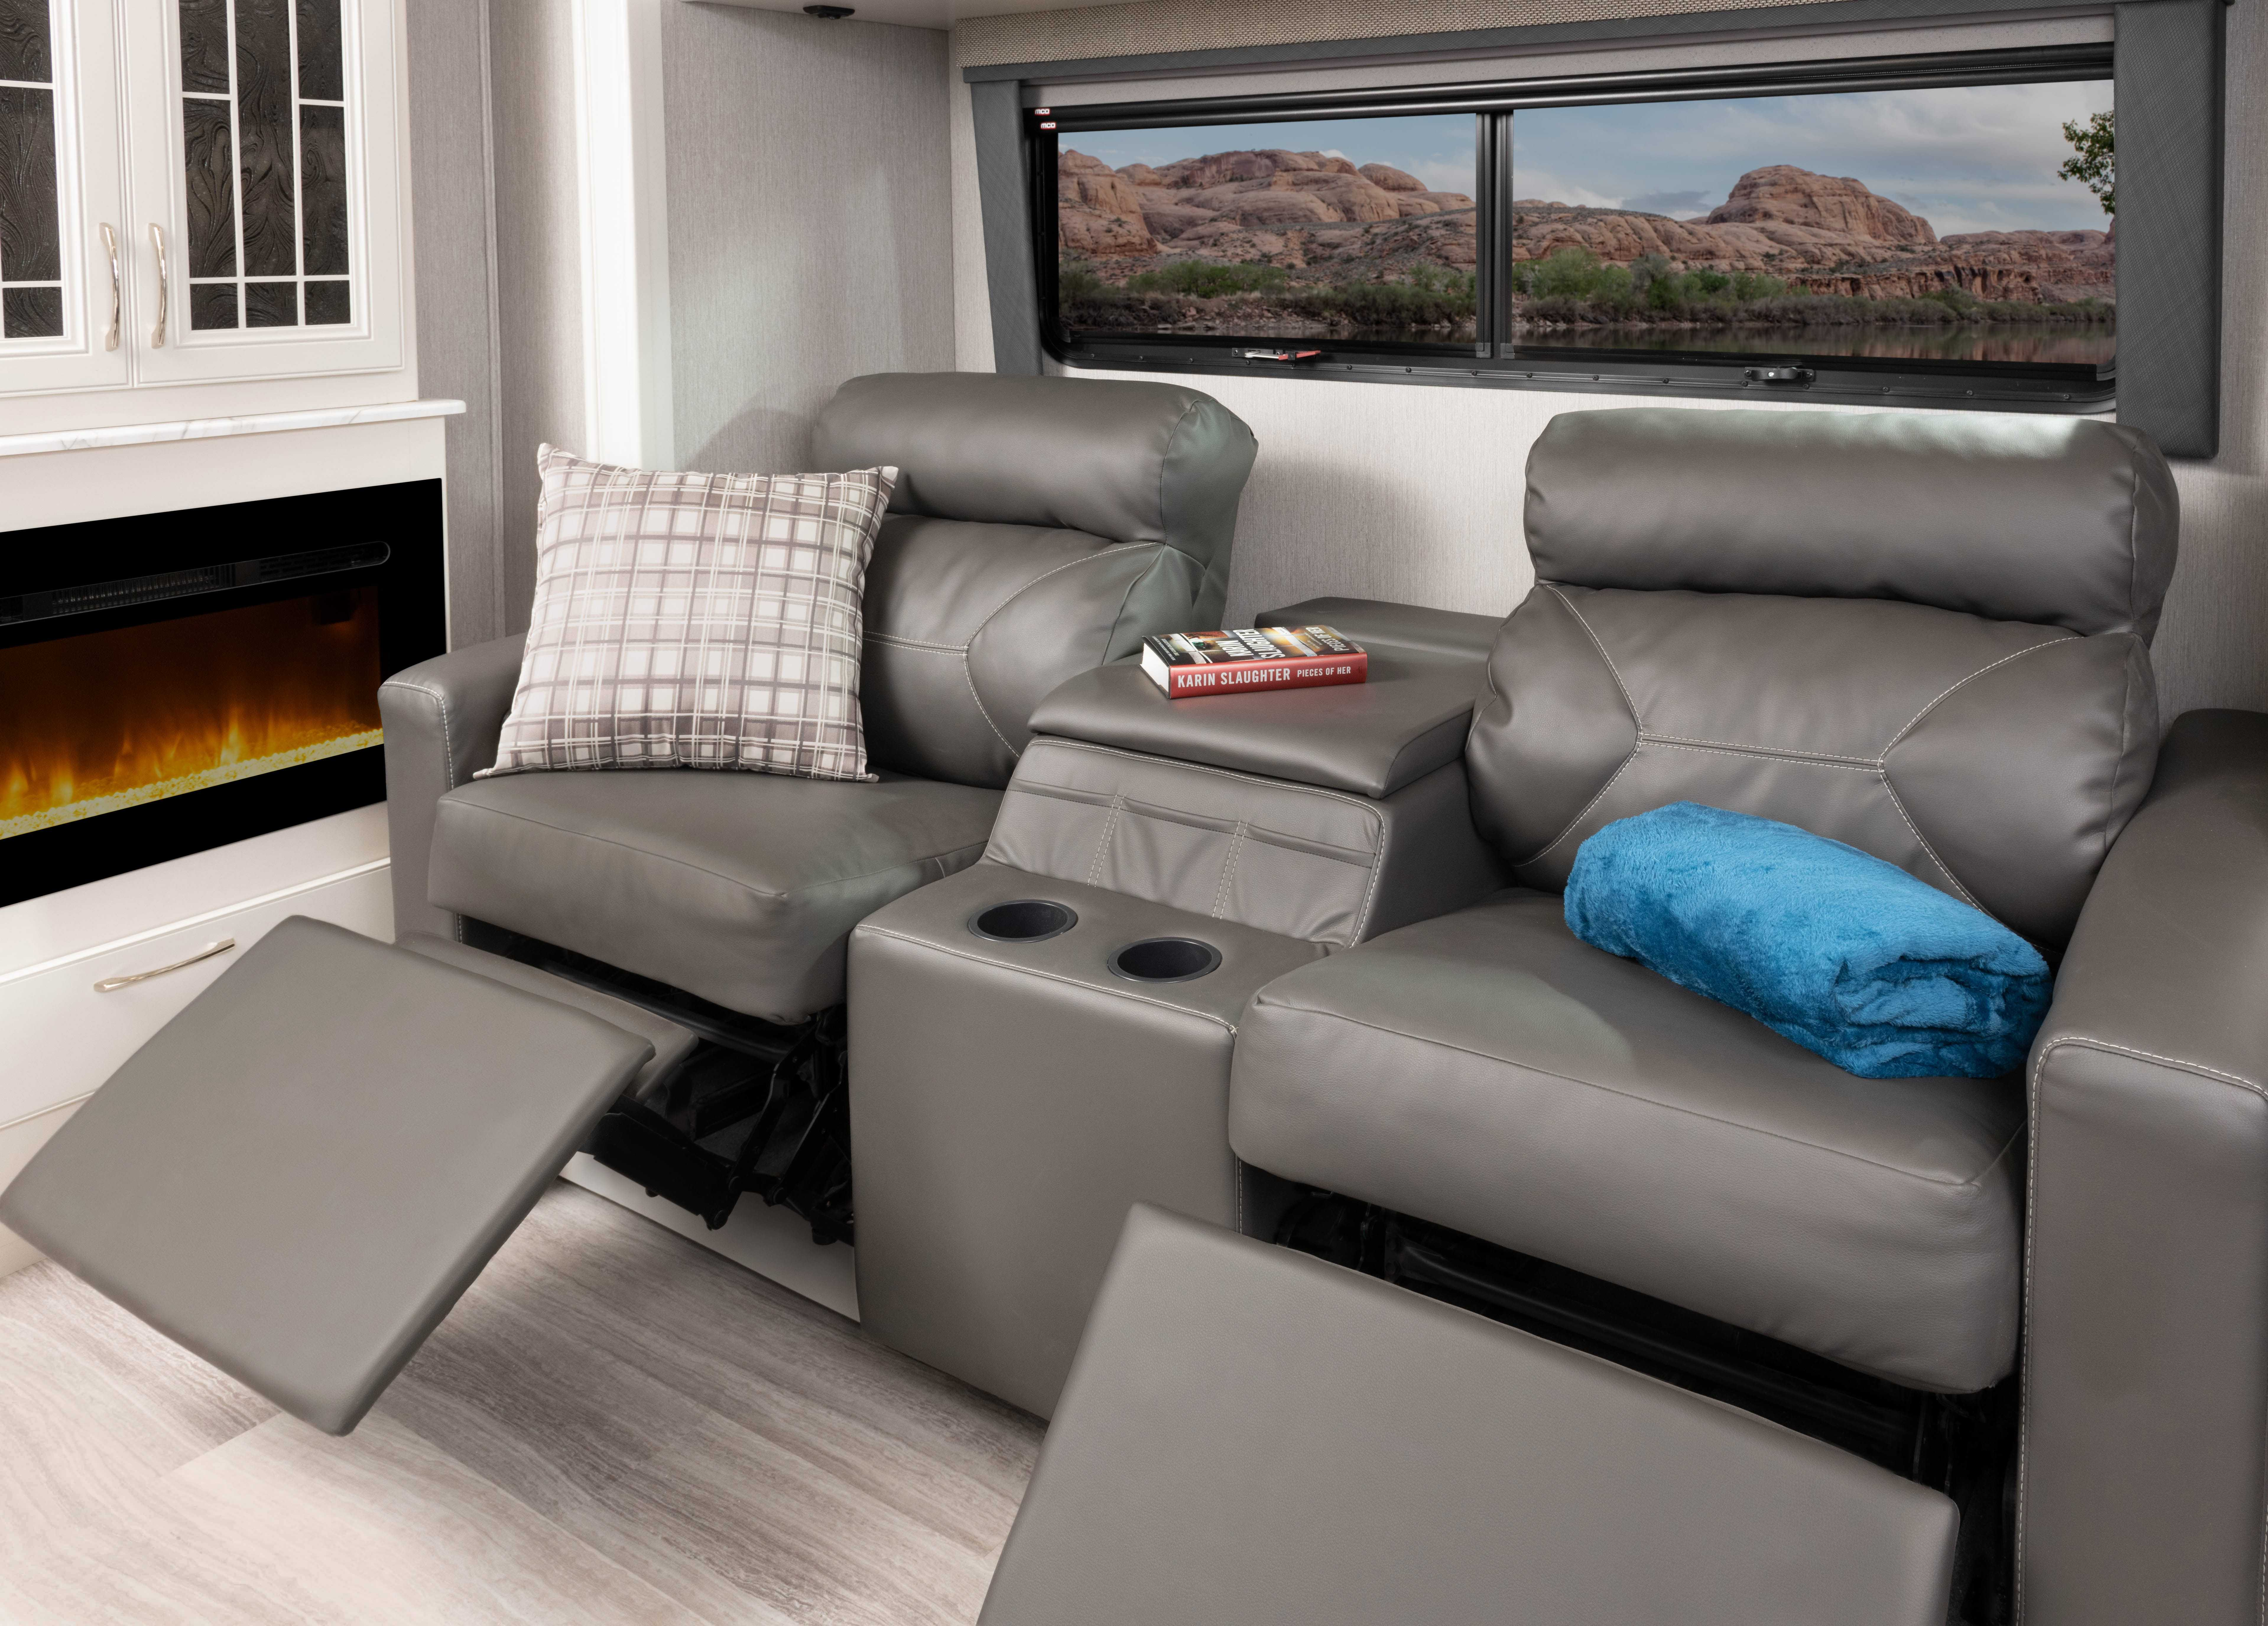 4 theatreseat Frontier34 GT Alloy Heritage1434 both MY22